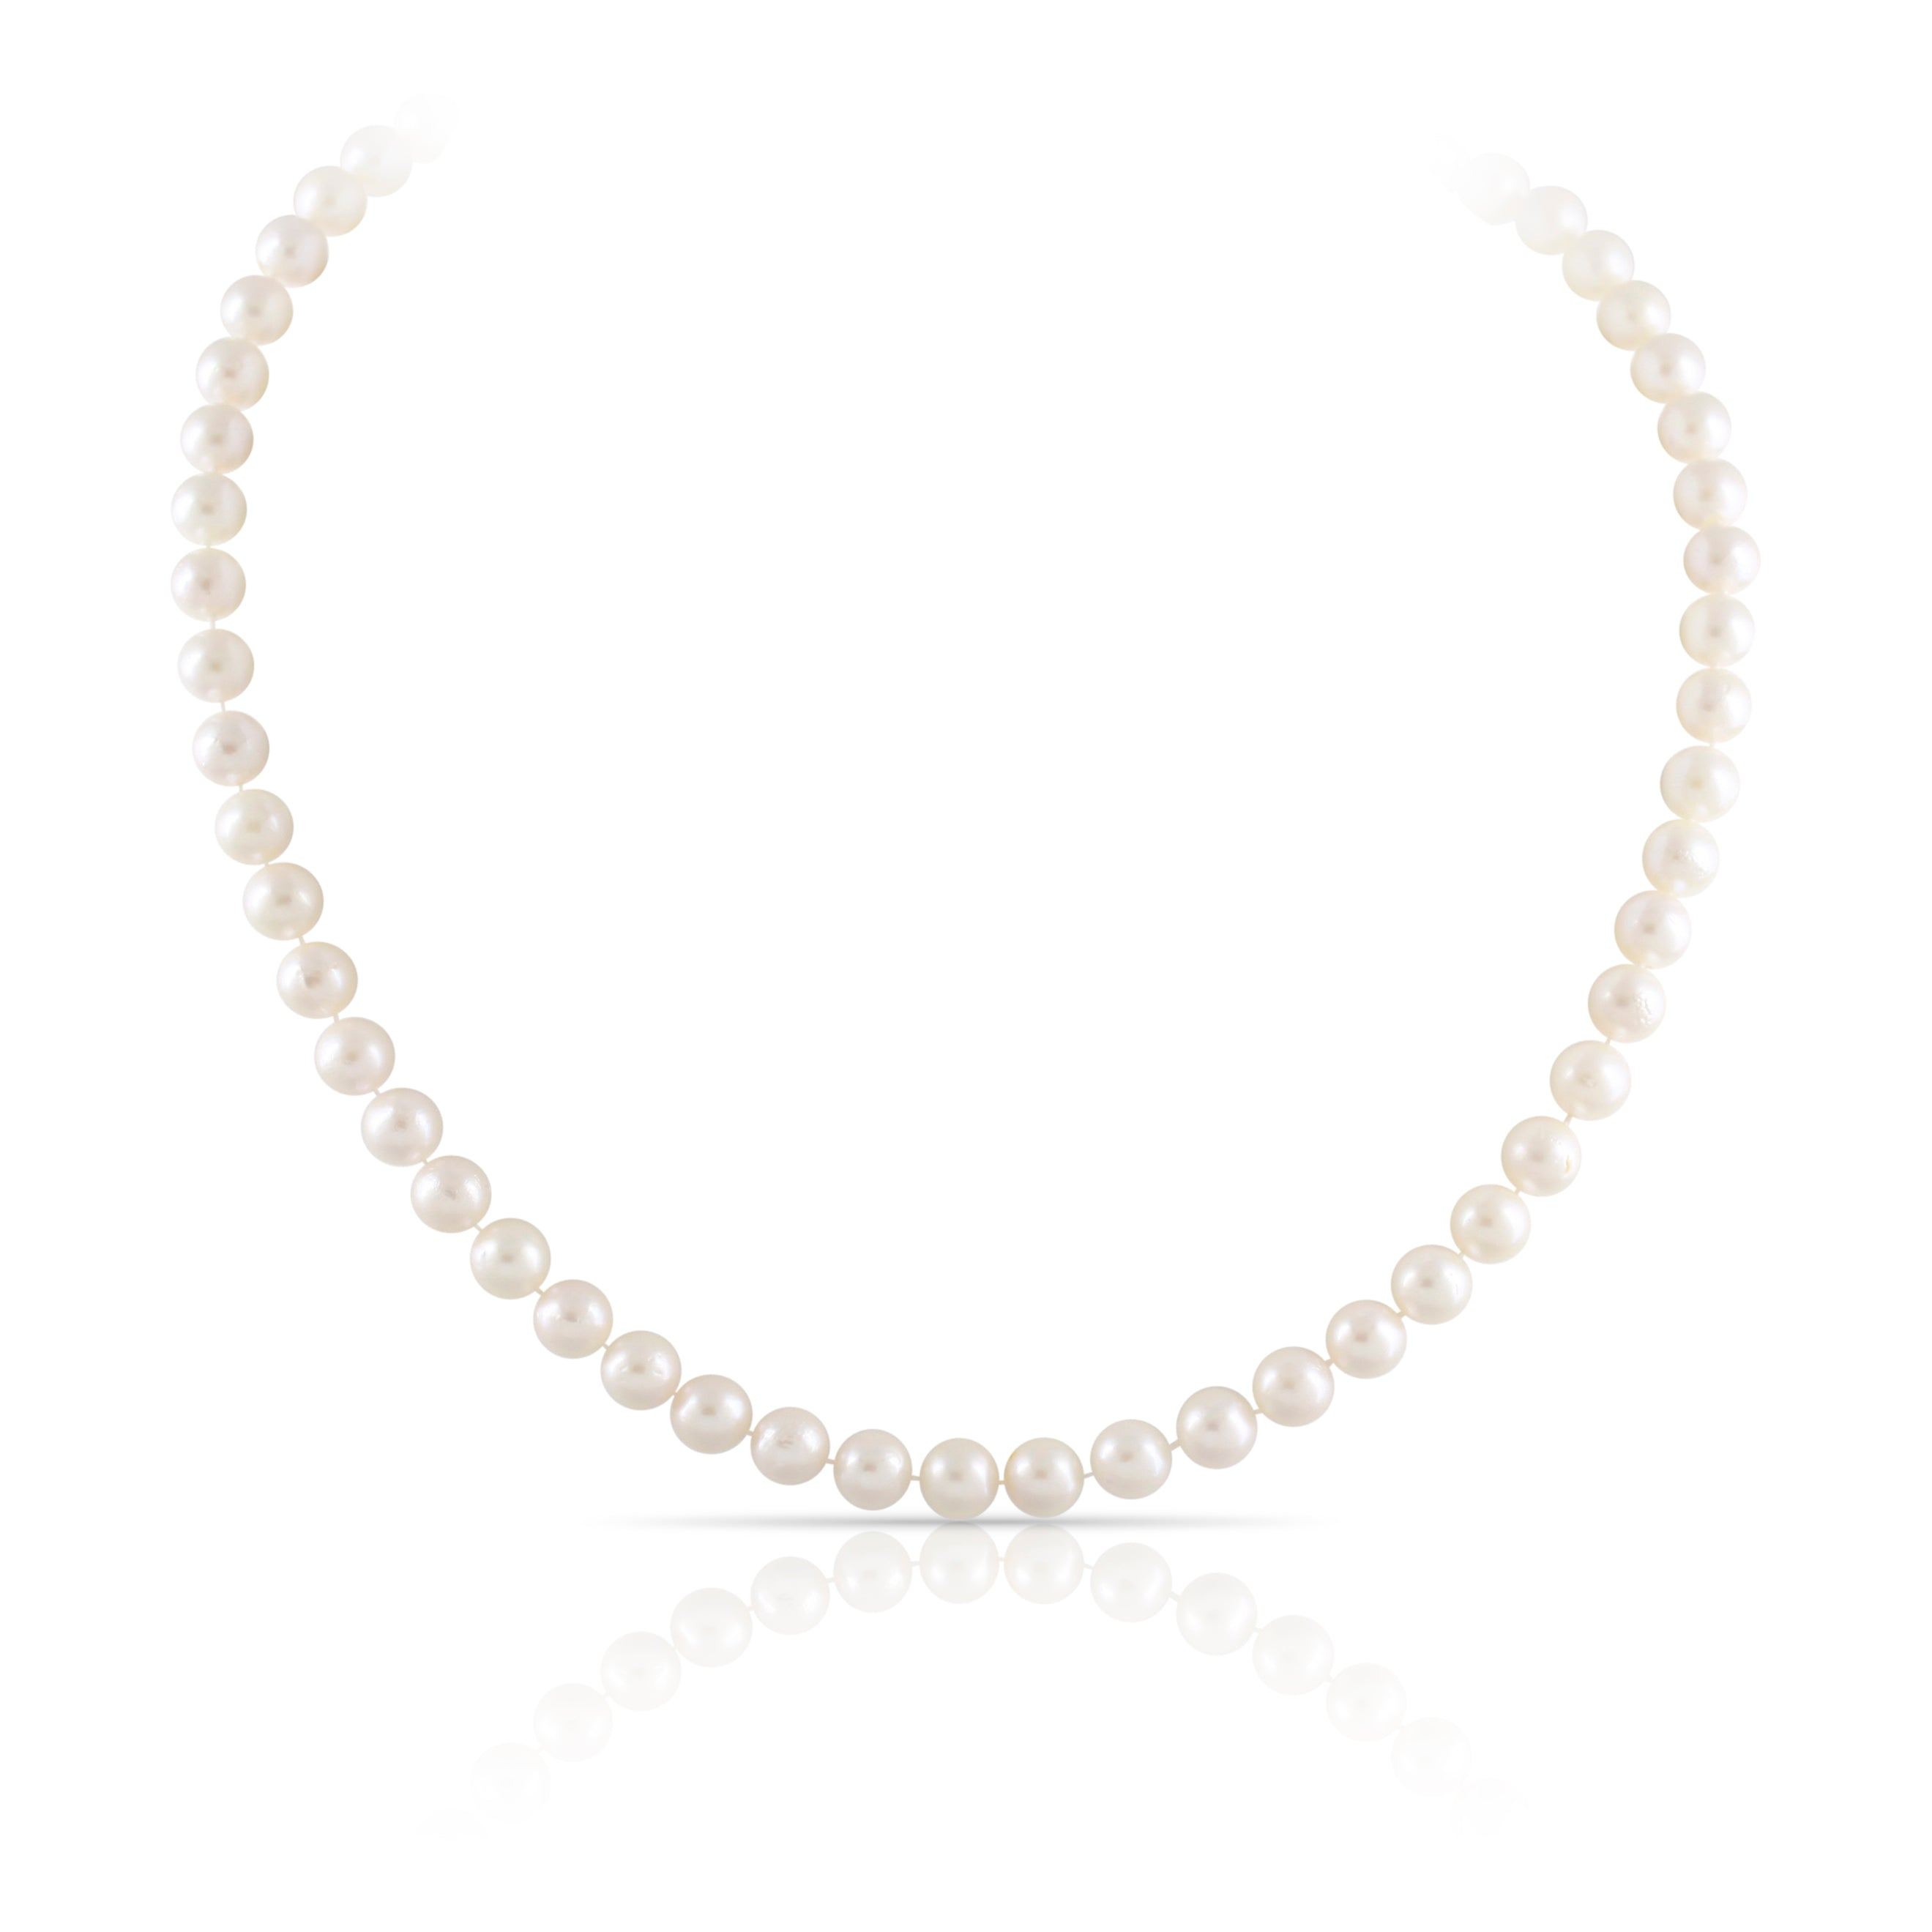 Pearl Necklace Strand | The Jasmine